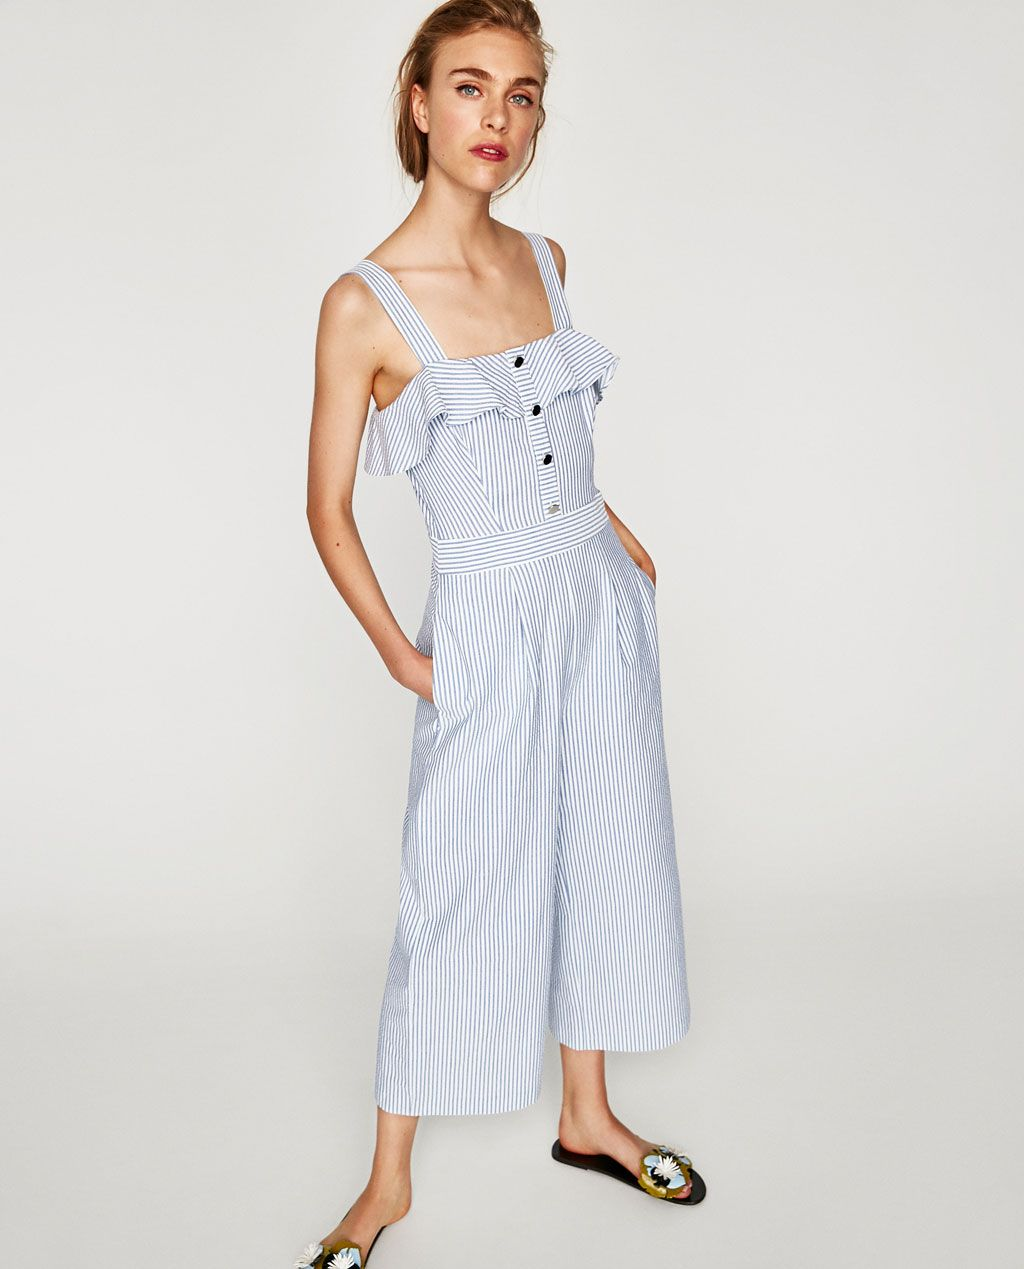 460eef6a7cec STRIPED JUMPSUIT WITH RUFFLES-JUMPSUITS-WOMAN